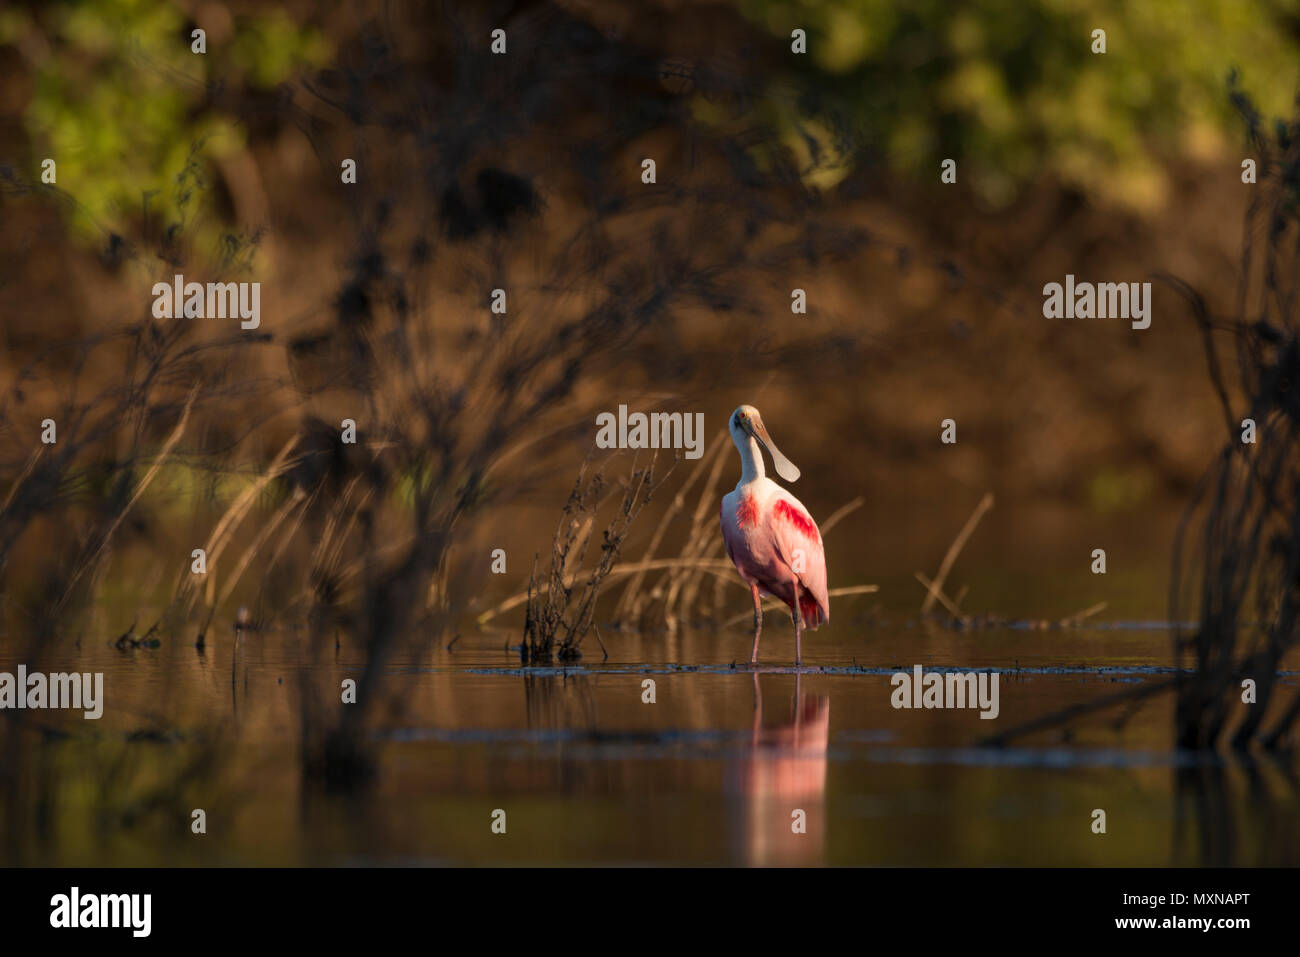 A Roseate Spoonbill from the Pantanal of Brazil - Stock Image